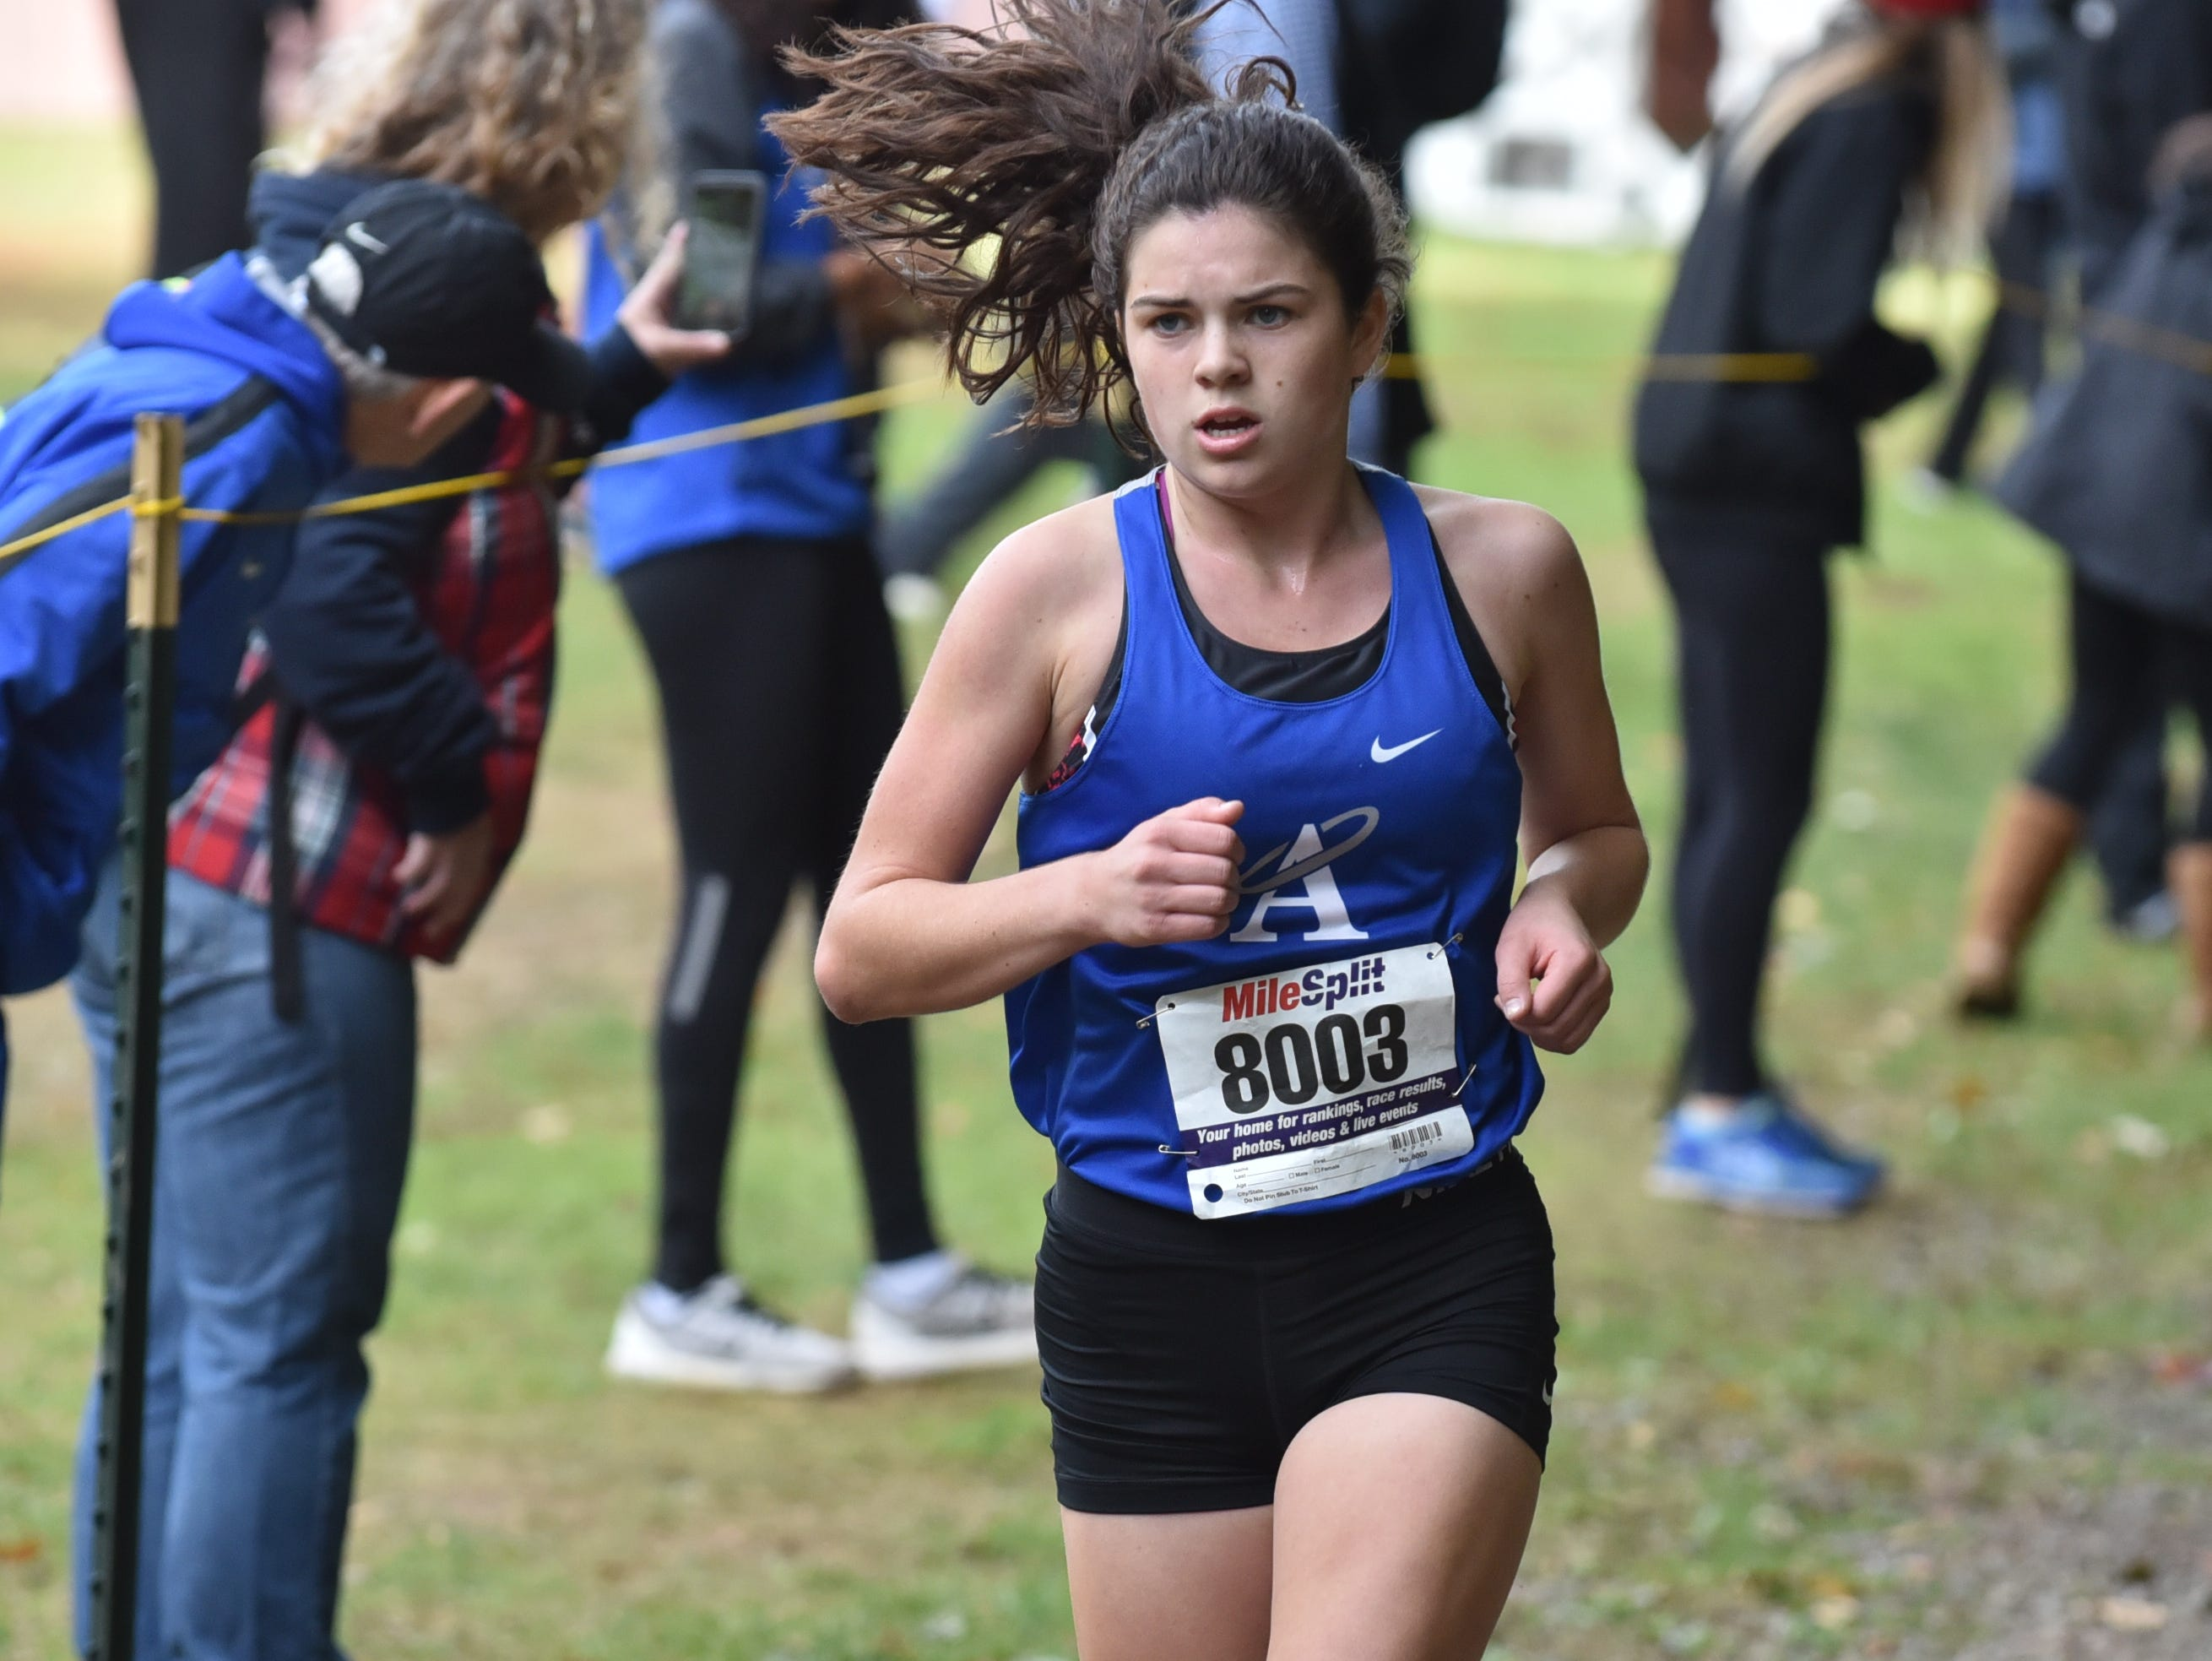 Christina Bagin of Holly Angels wins 3rd in Group E at the Bergen County Cross Country Championships.